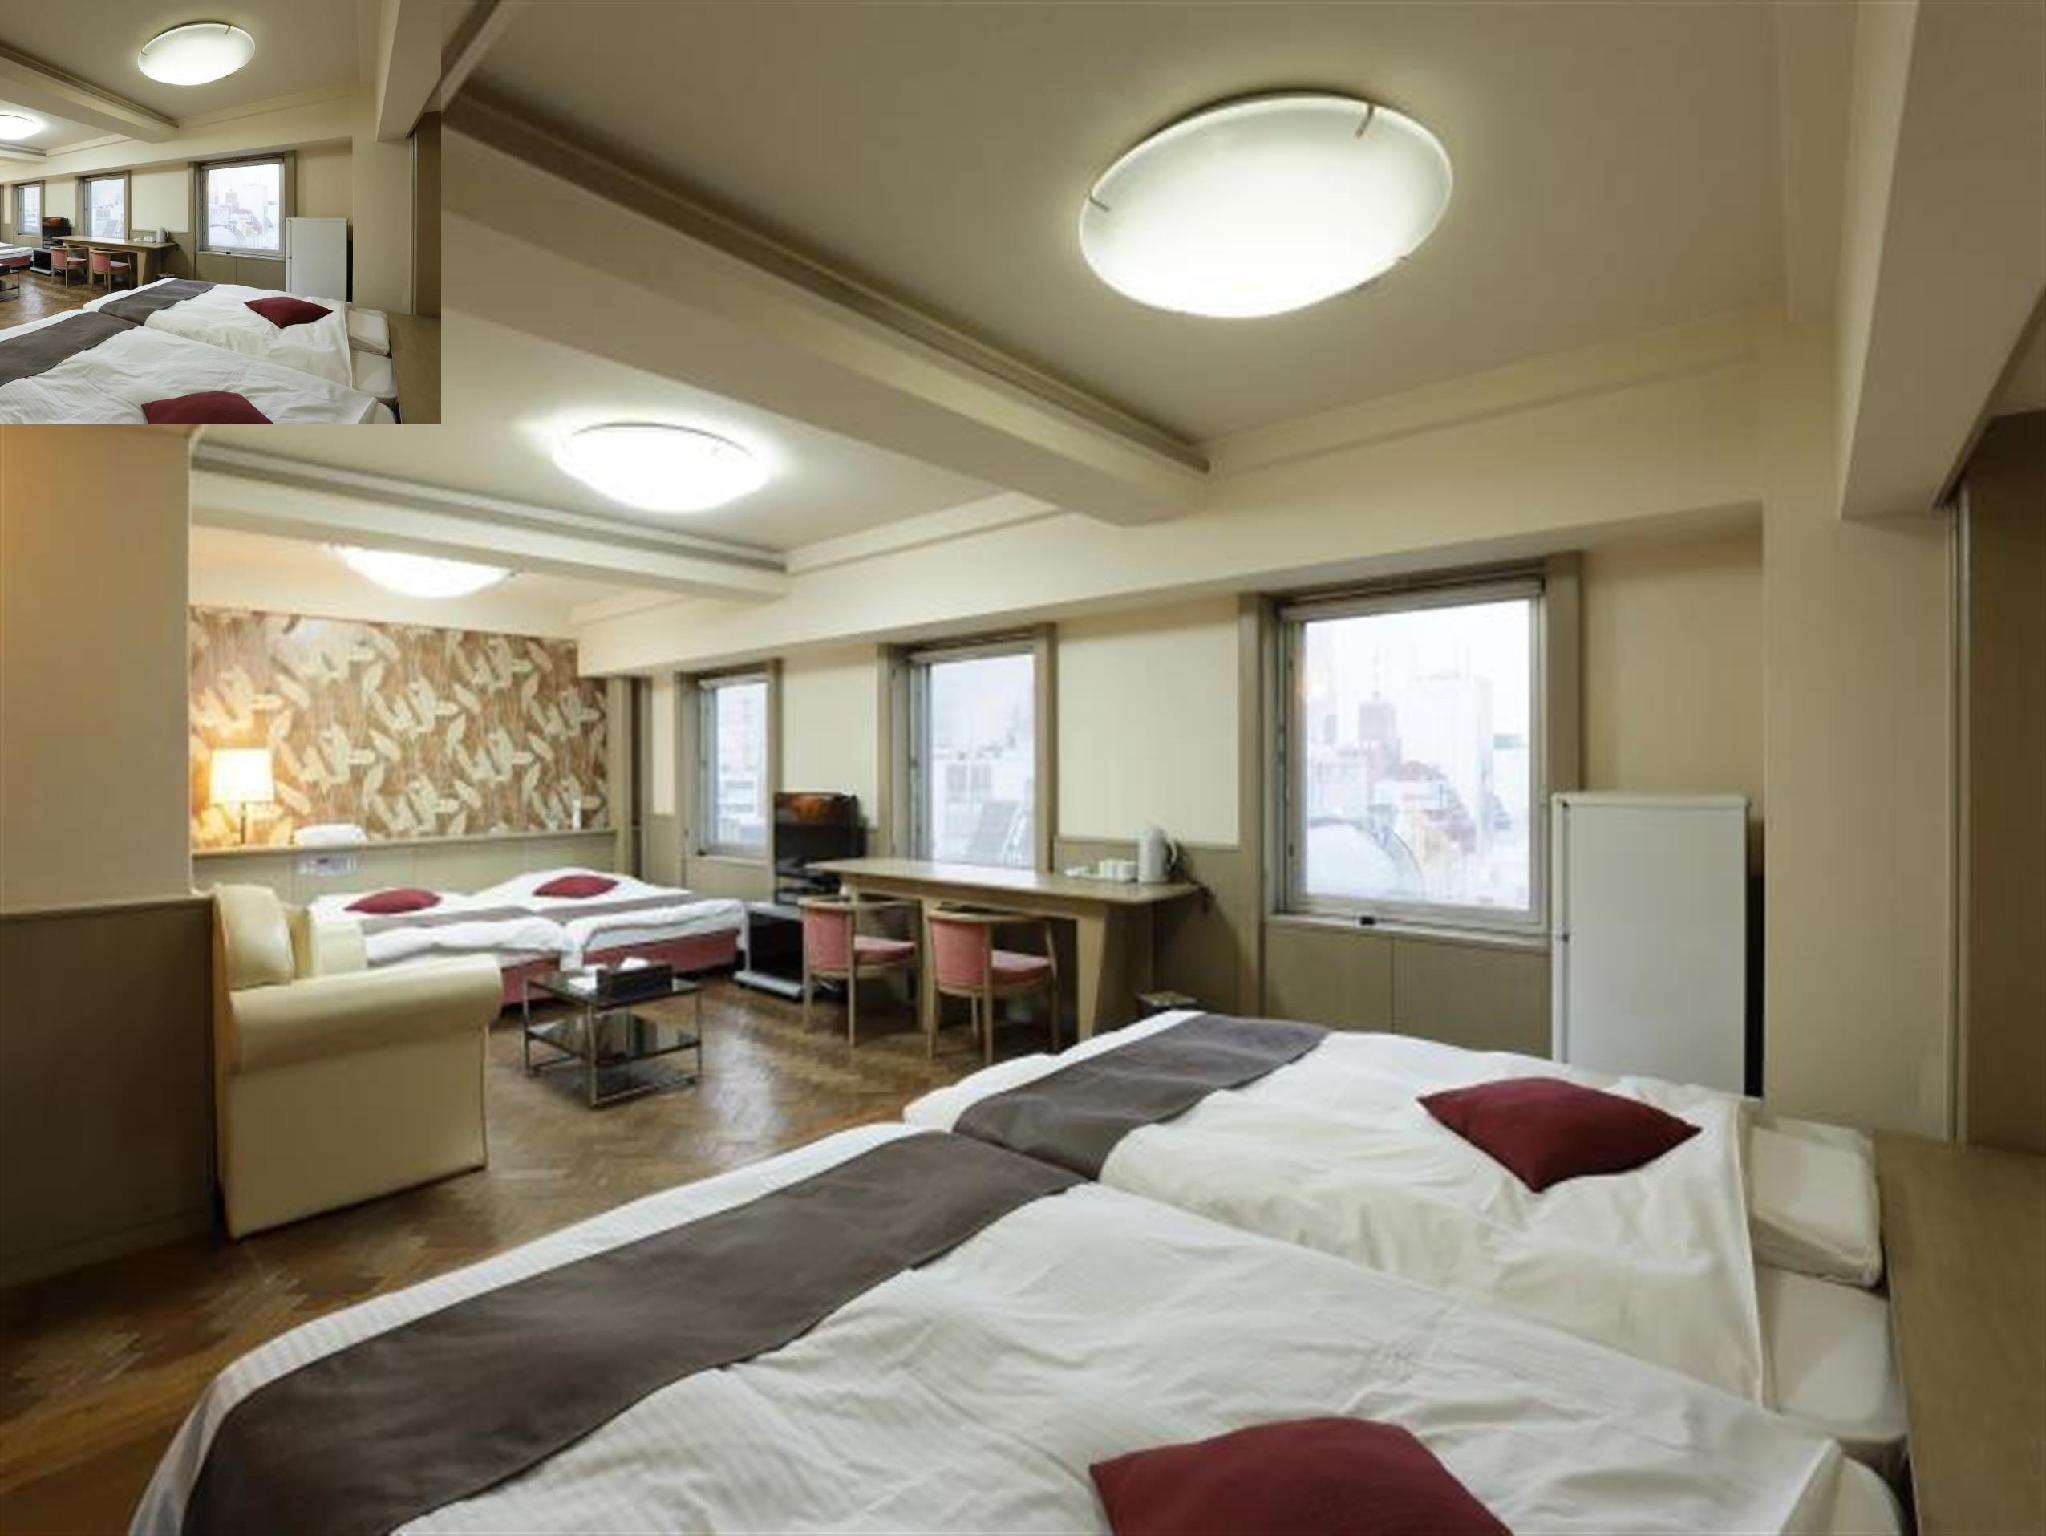 家庭房(4張床) (4 Beds Family Room)